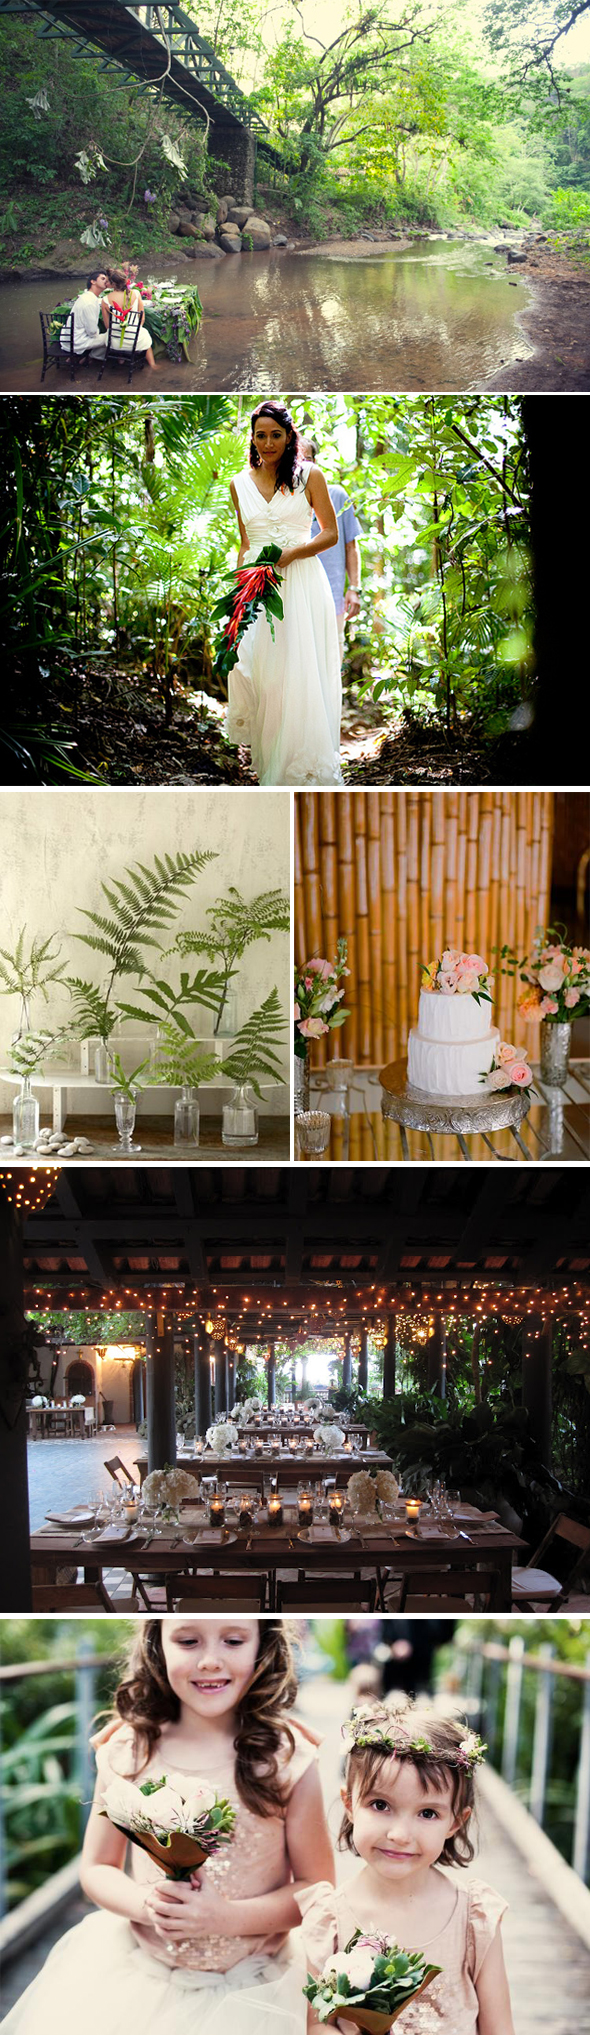 rainforest destination weddings Destination Weddings in the Rainforest